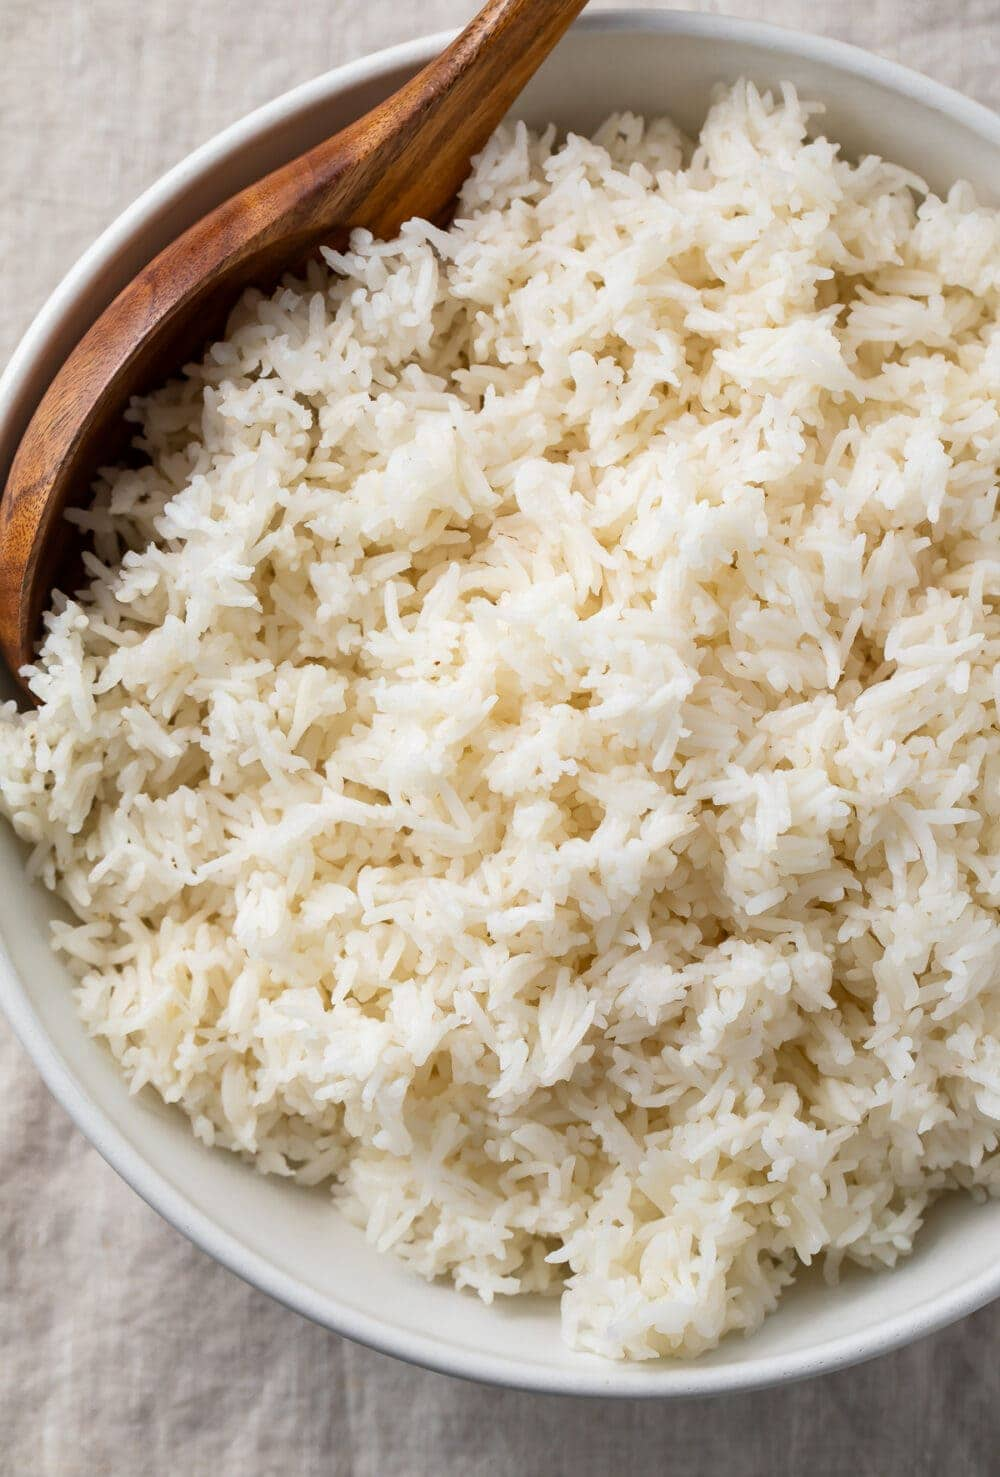 Overhead view of a large bowl of Instant Pot basmati rice with a wooden spoon on a table